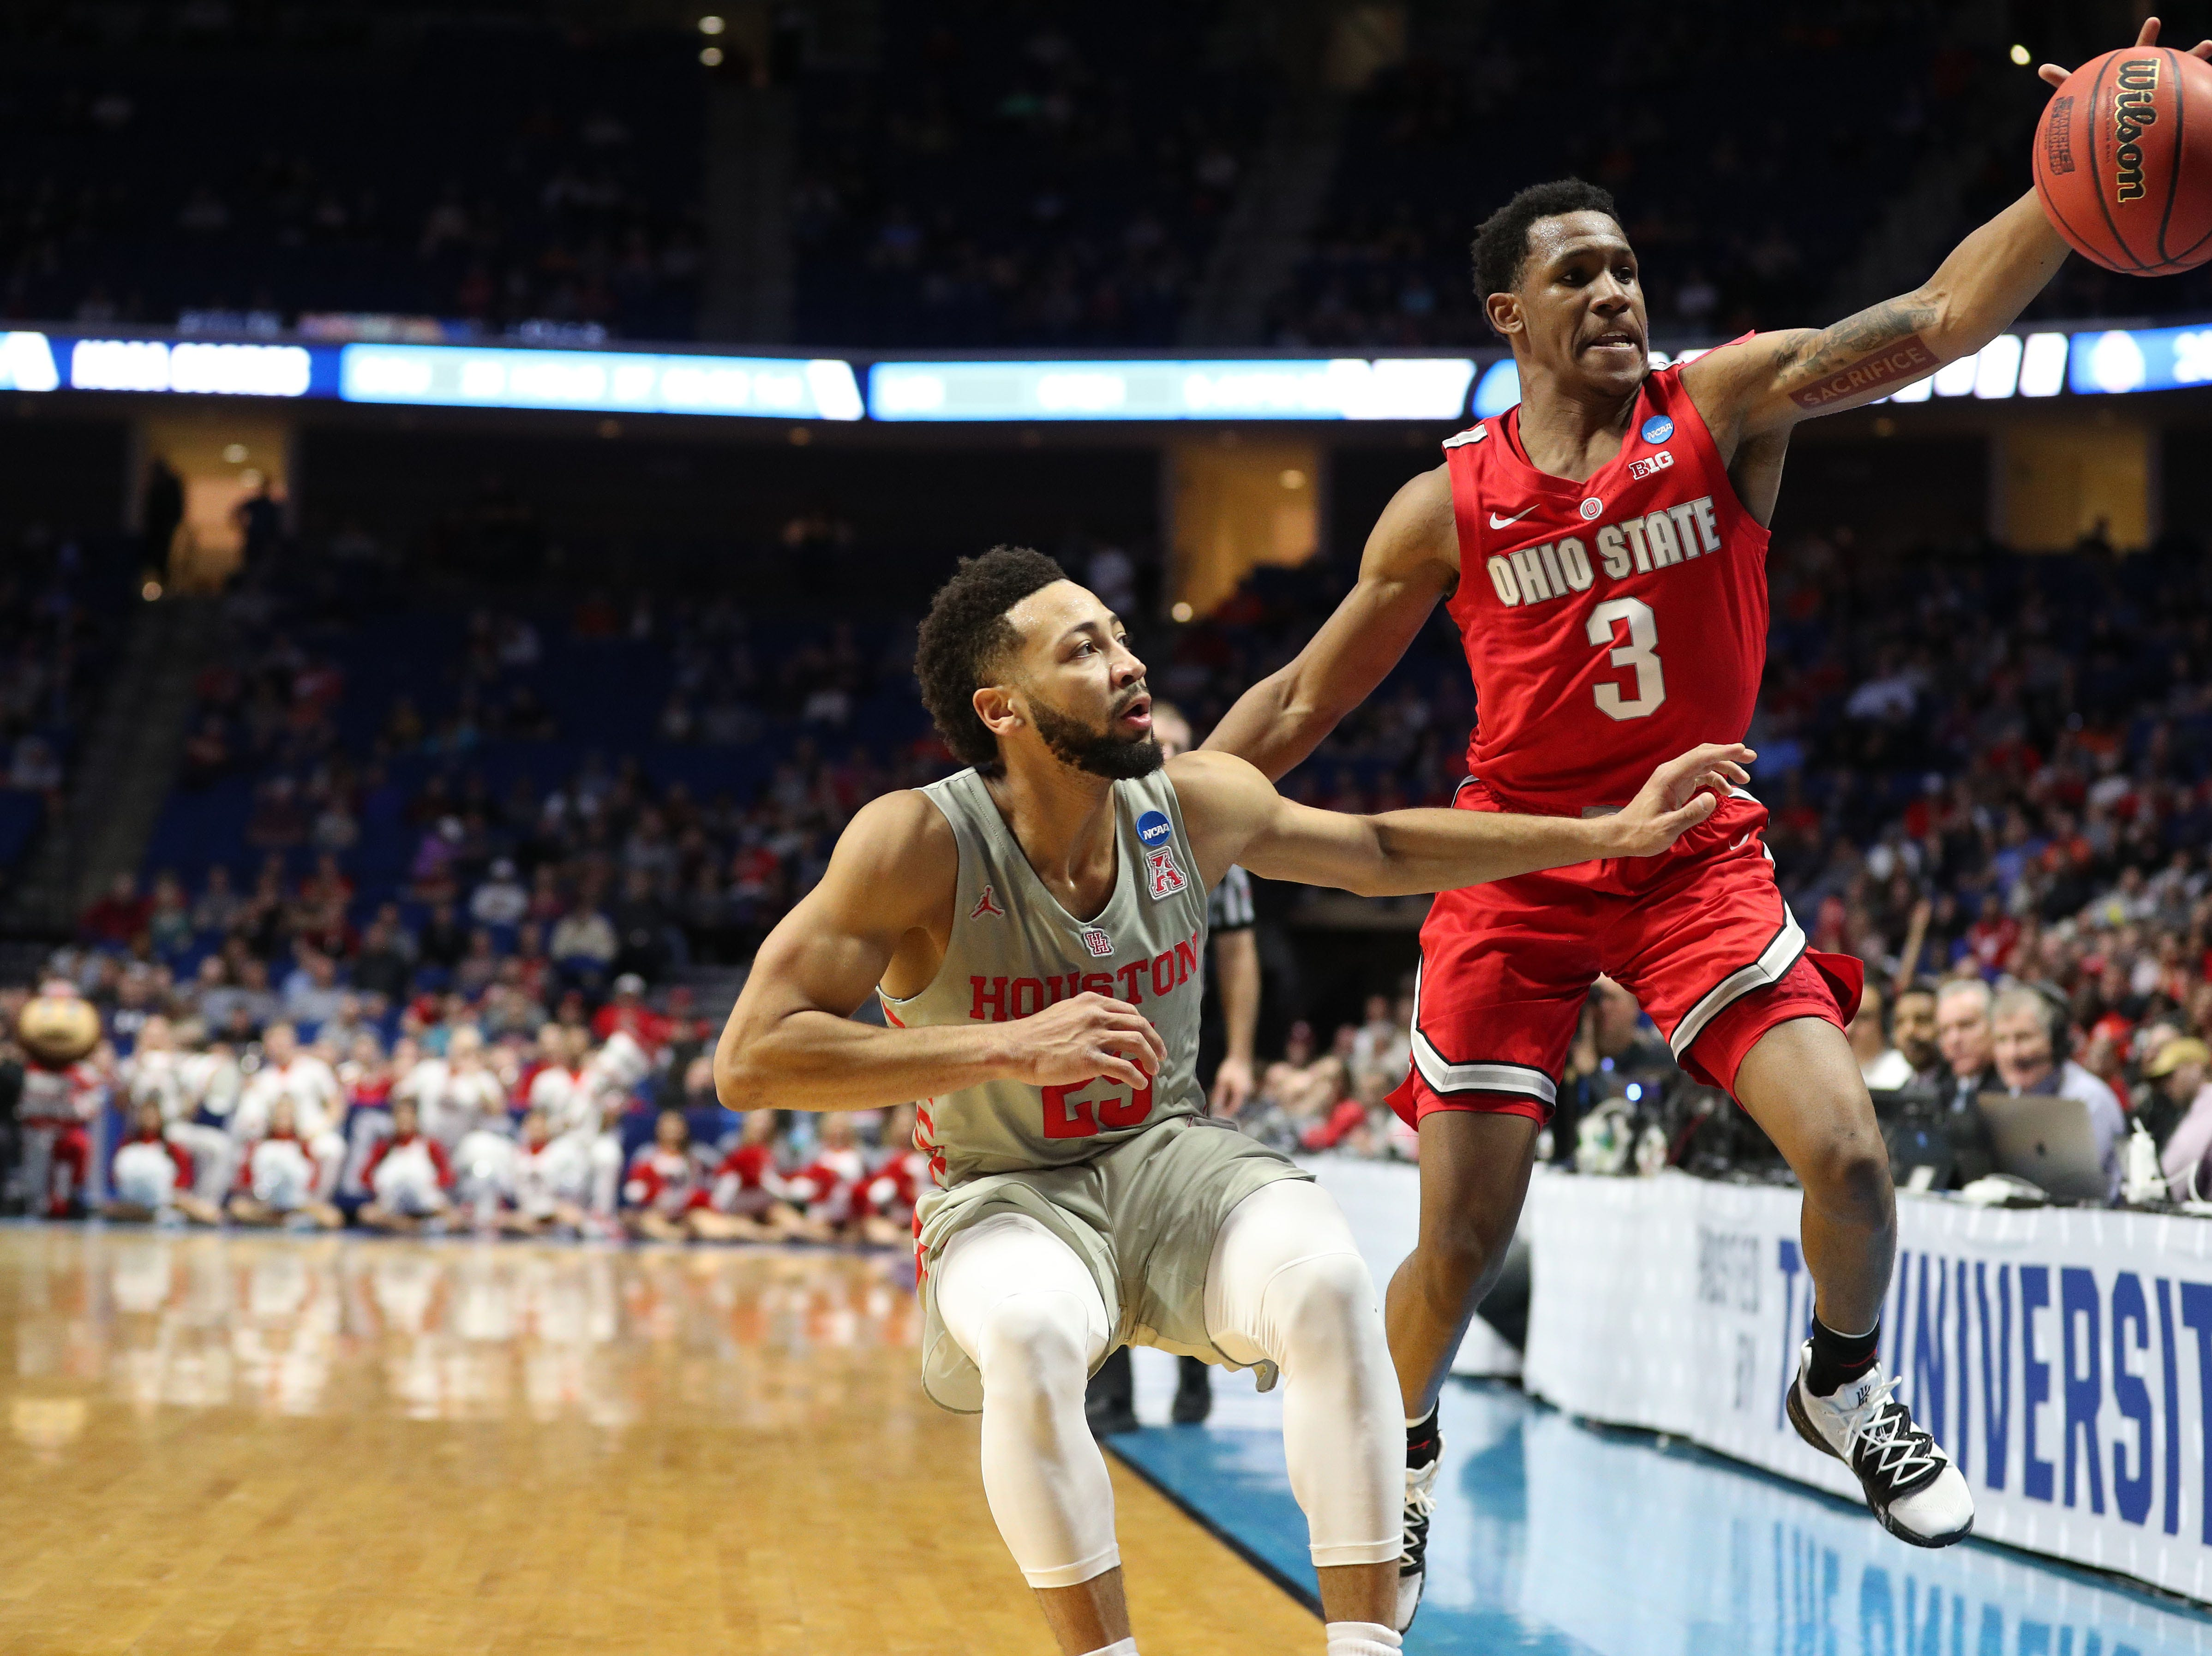 Round of 32: Ohio State Buckeyes guard C.J. Jackson (3) saves the ball from going out of bounds in front of Houston Cougars guard Galen Robinson Jr. (25) during the first half.